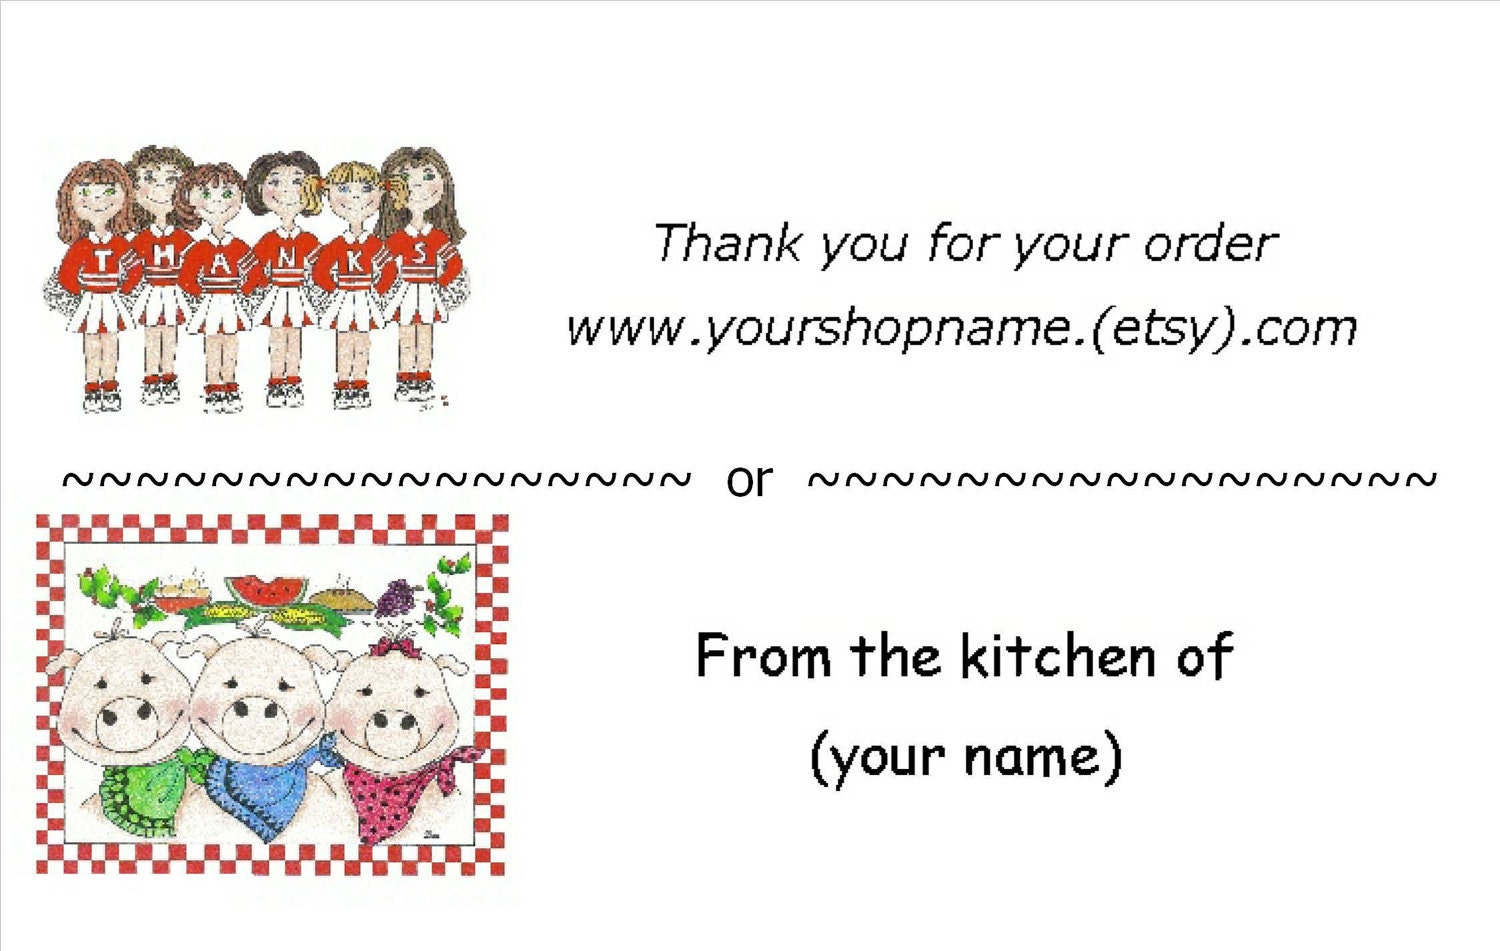 30 Personalized Stickers for Any Occasion or Need - Address, Promotional, Party